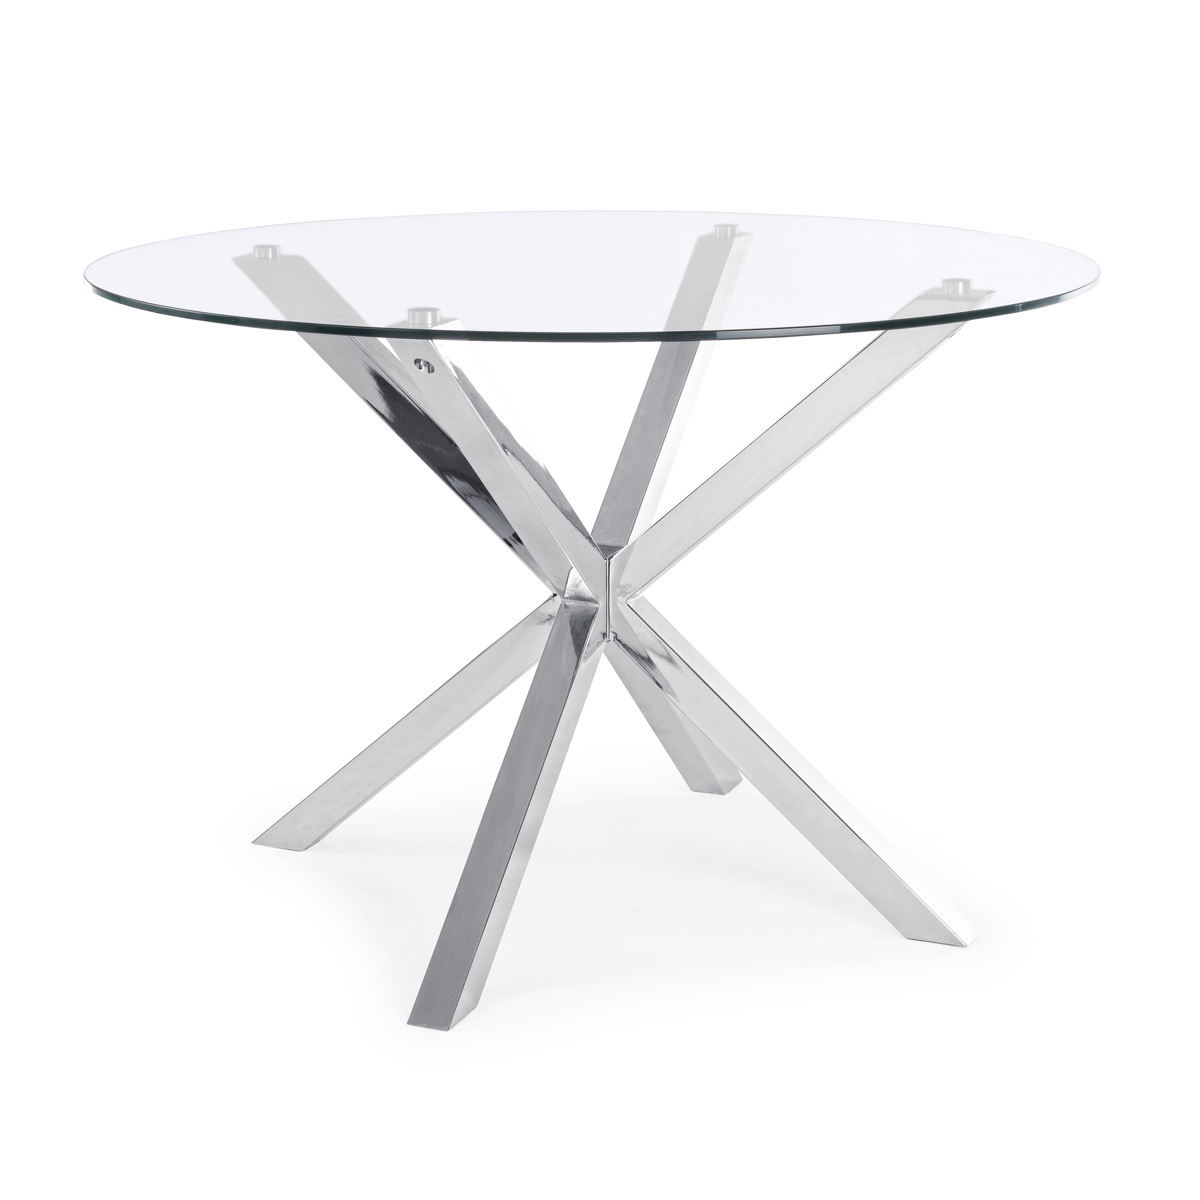 Photos 1: Bizzotto Fixed round table d. 114 0732188